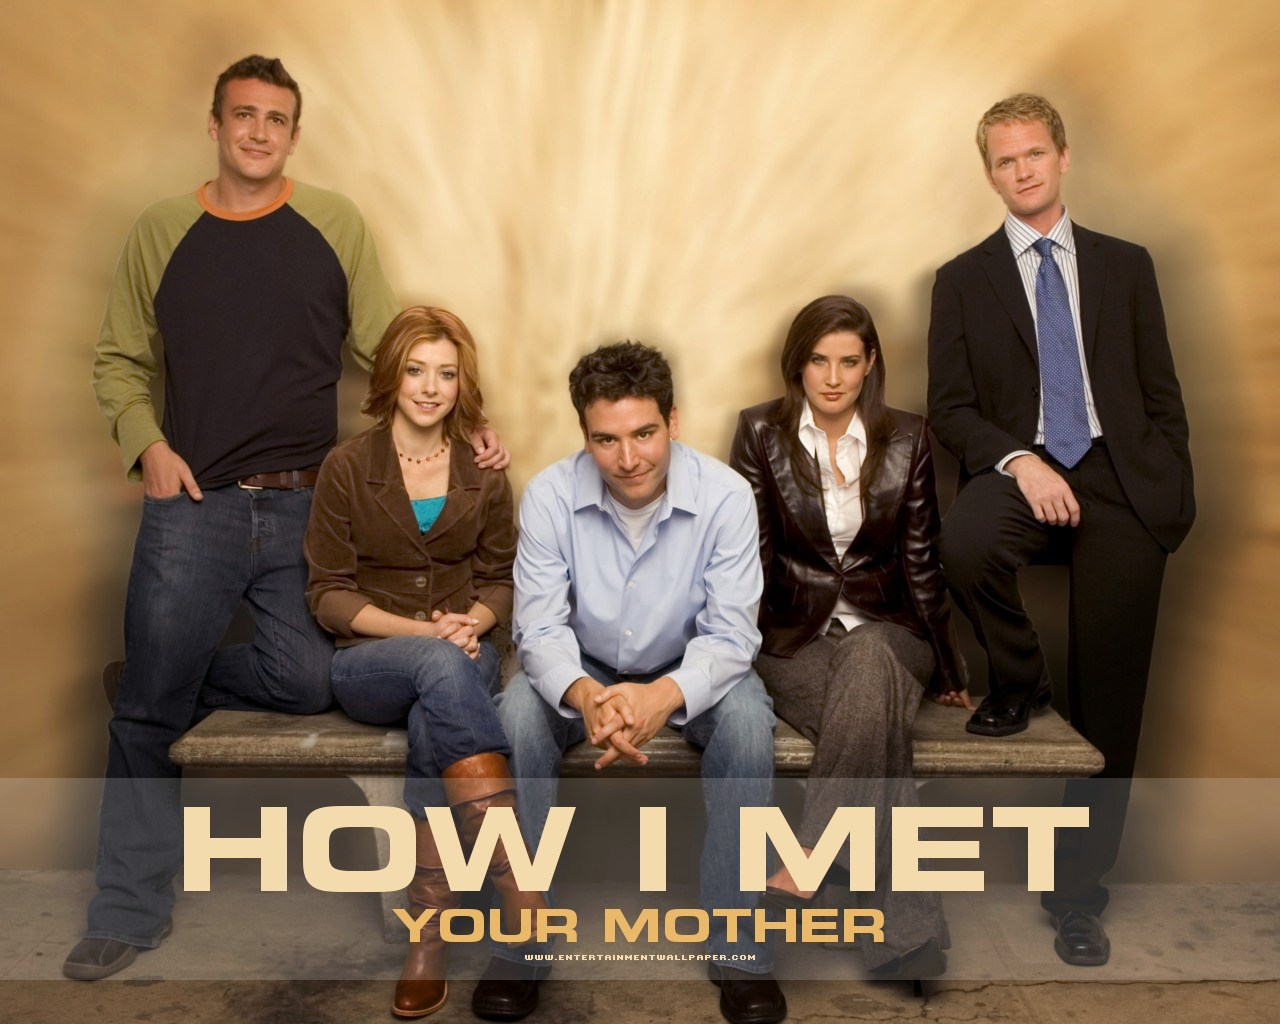 How I meet your mother? How+i+met+your+mother+s6